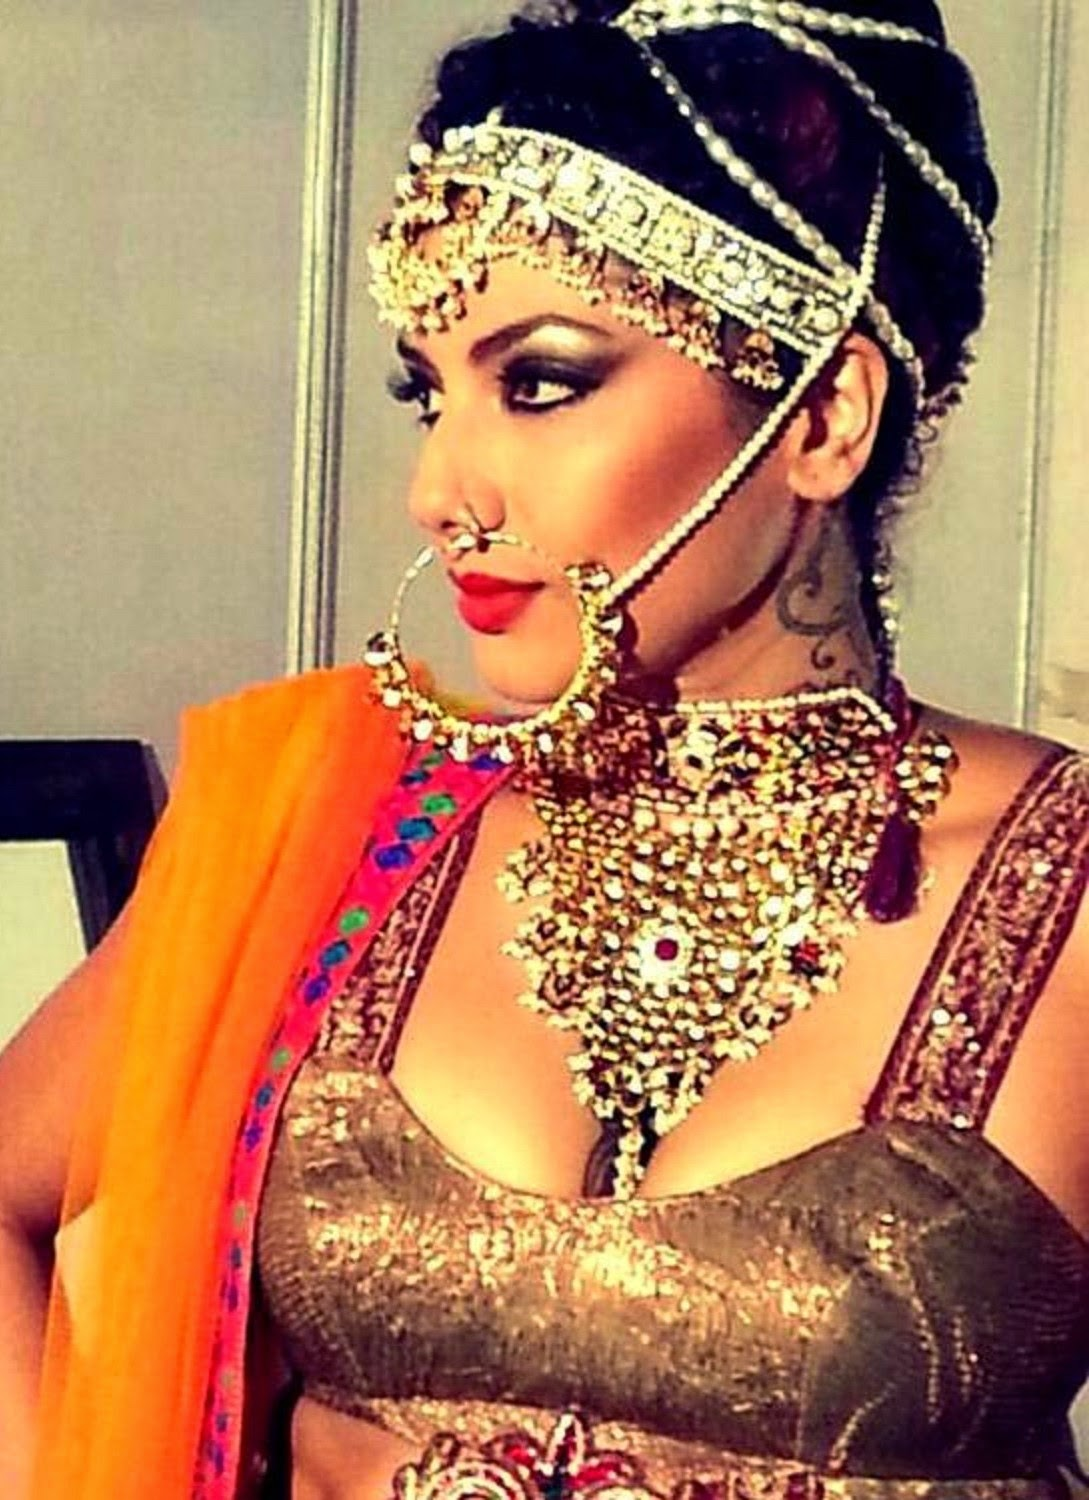 Bigg Boss season 8 Contestants Diandra Soares Wallpapers Free Download